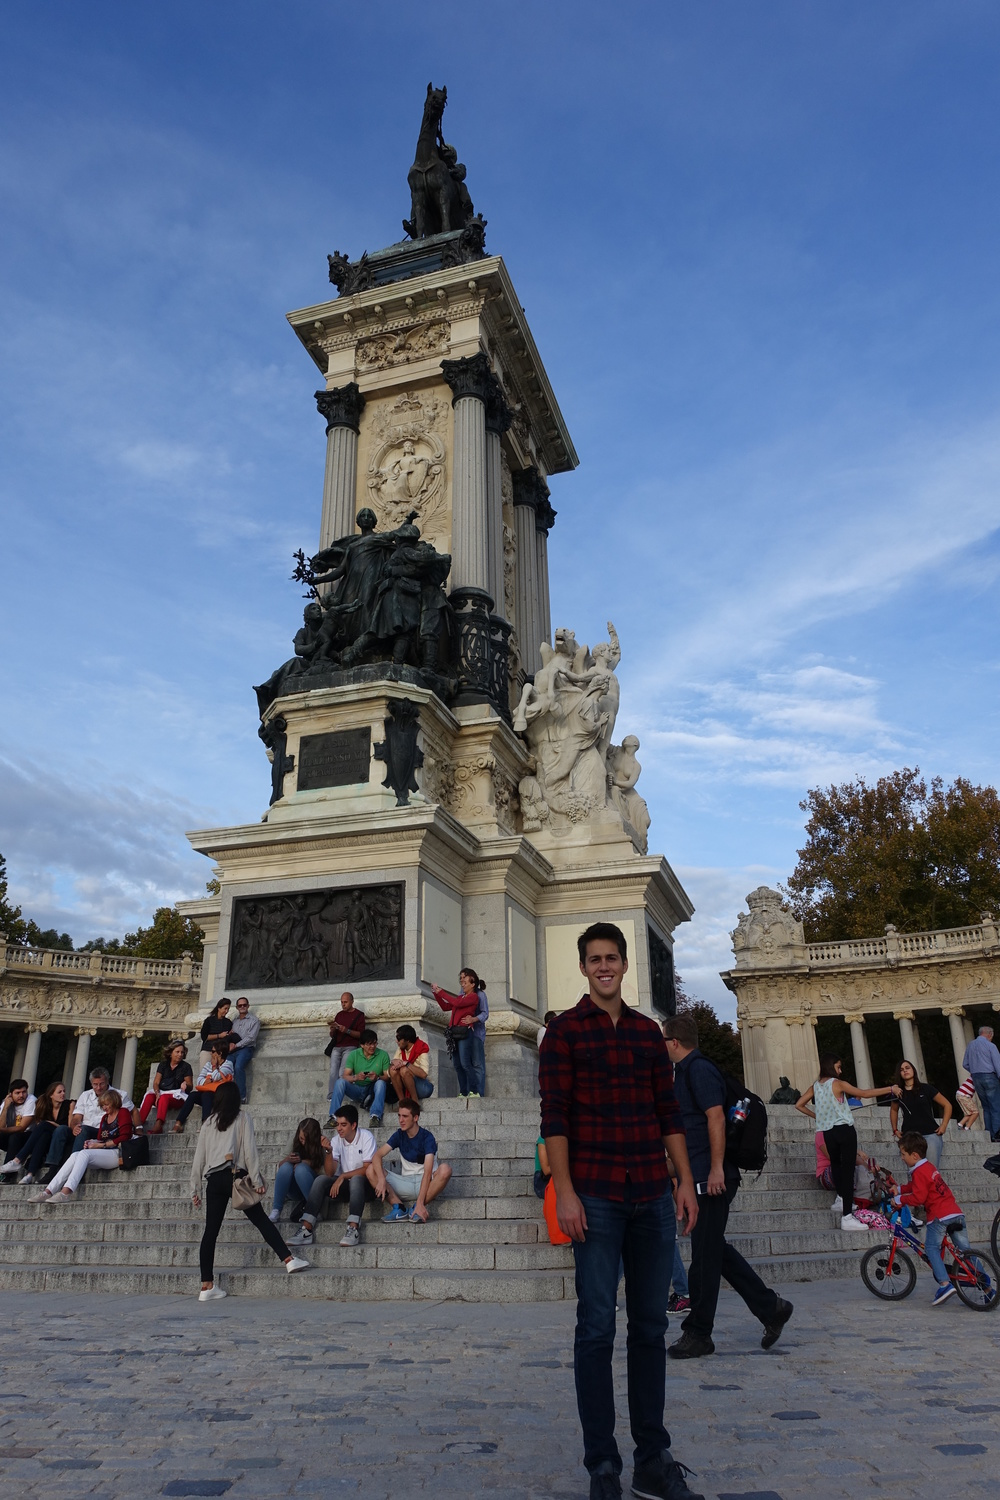 Just more sights of Retiro!